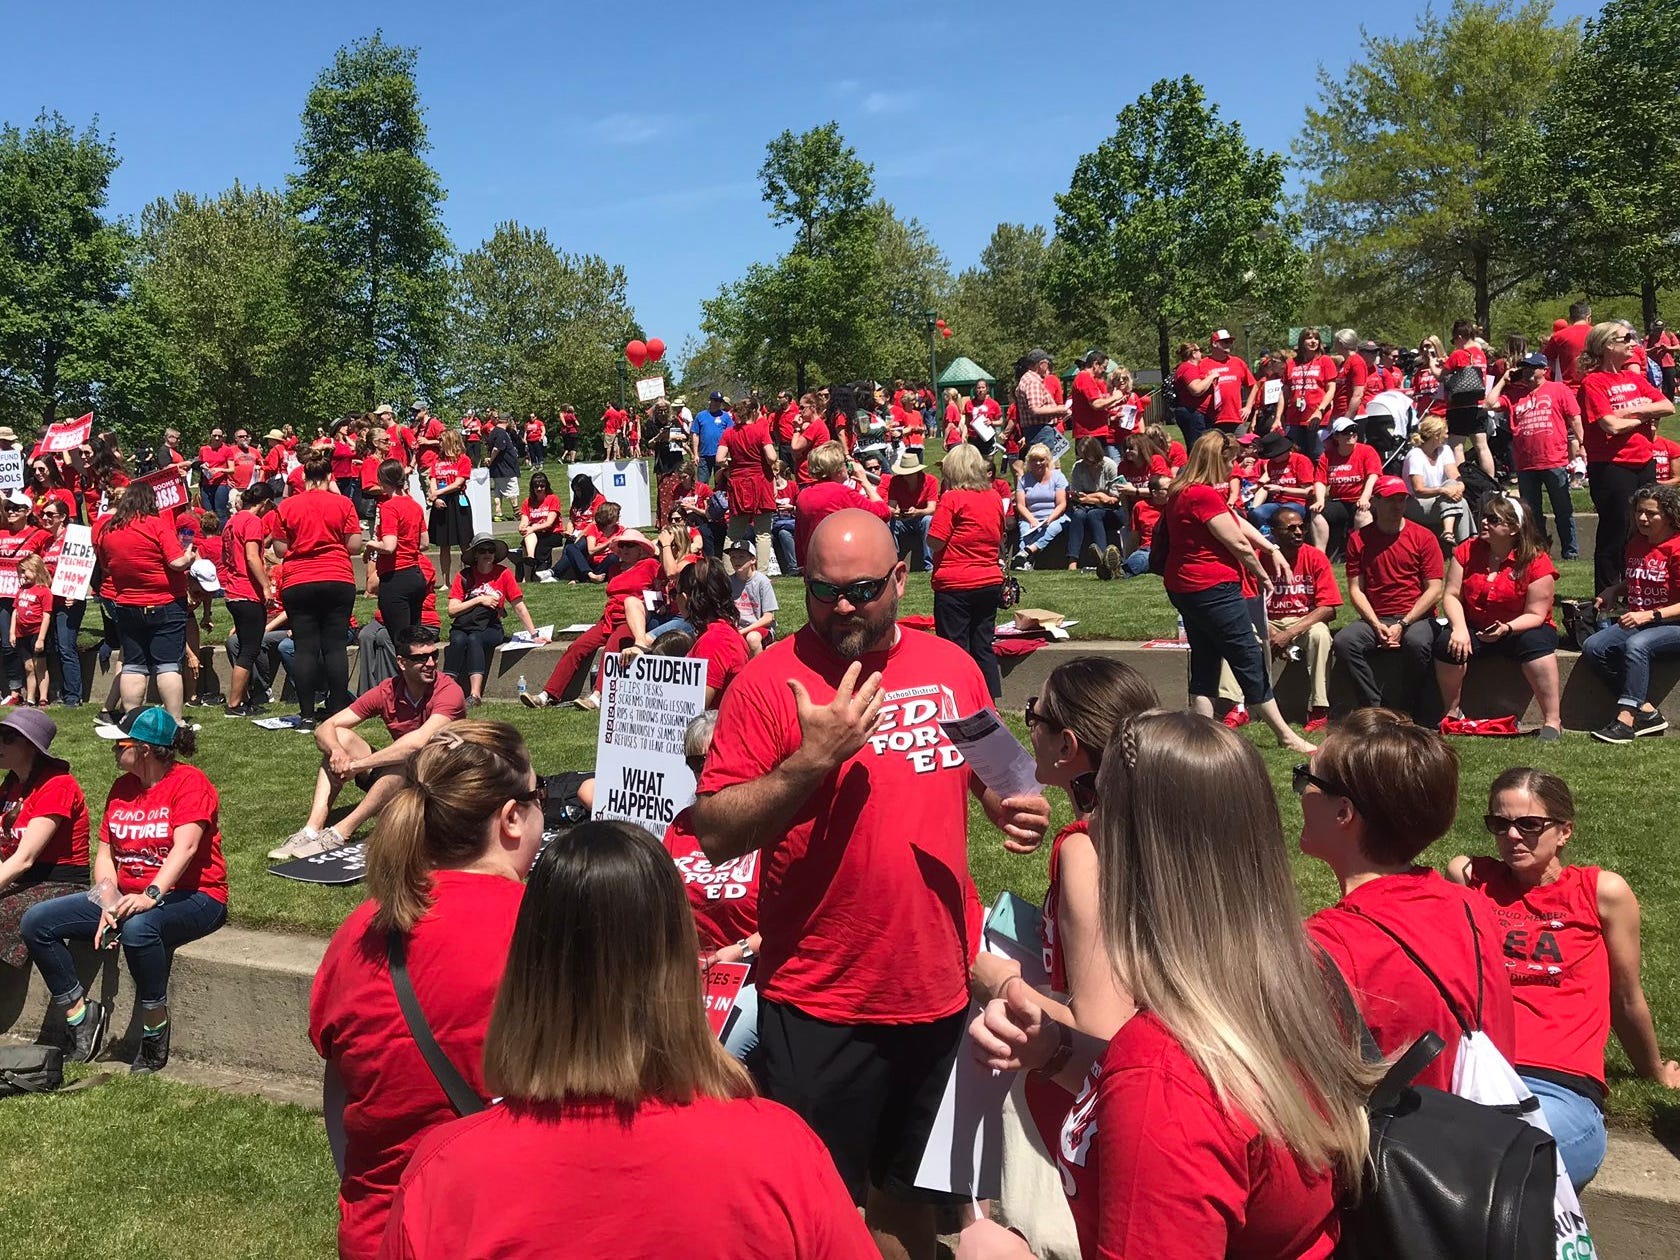 Supporters rally at Riverfront Park in Salem for education funding Tuesday, May 8, 2019.